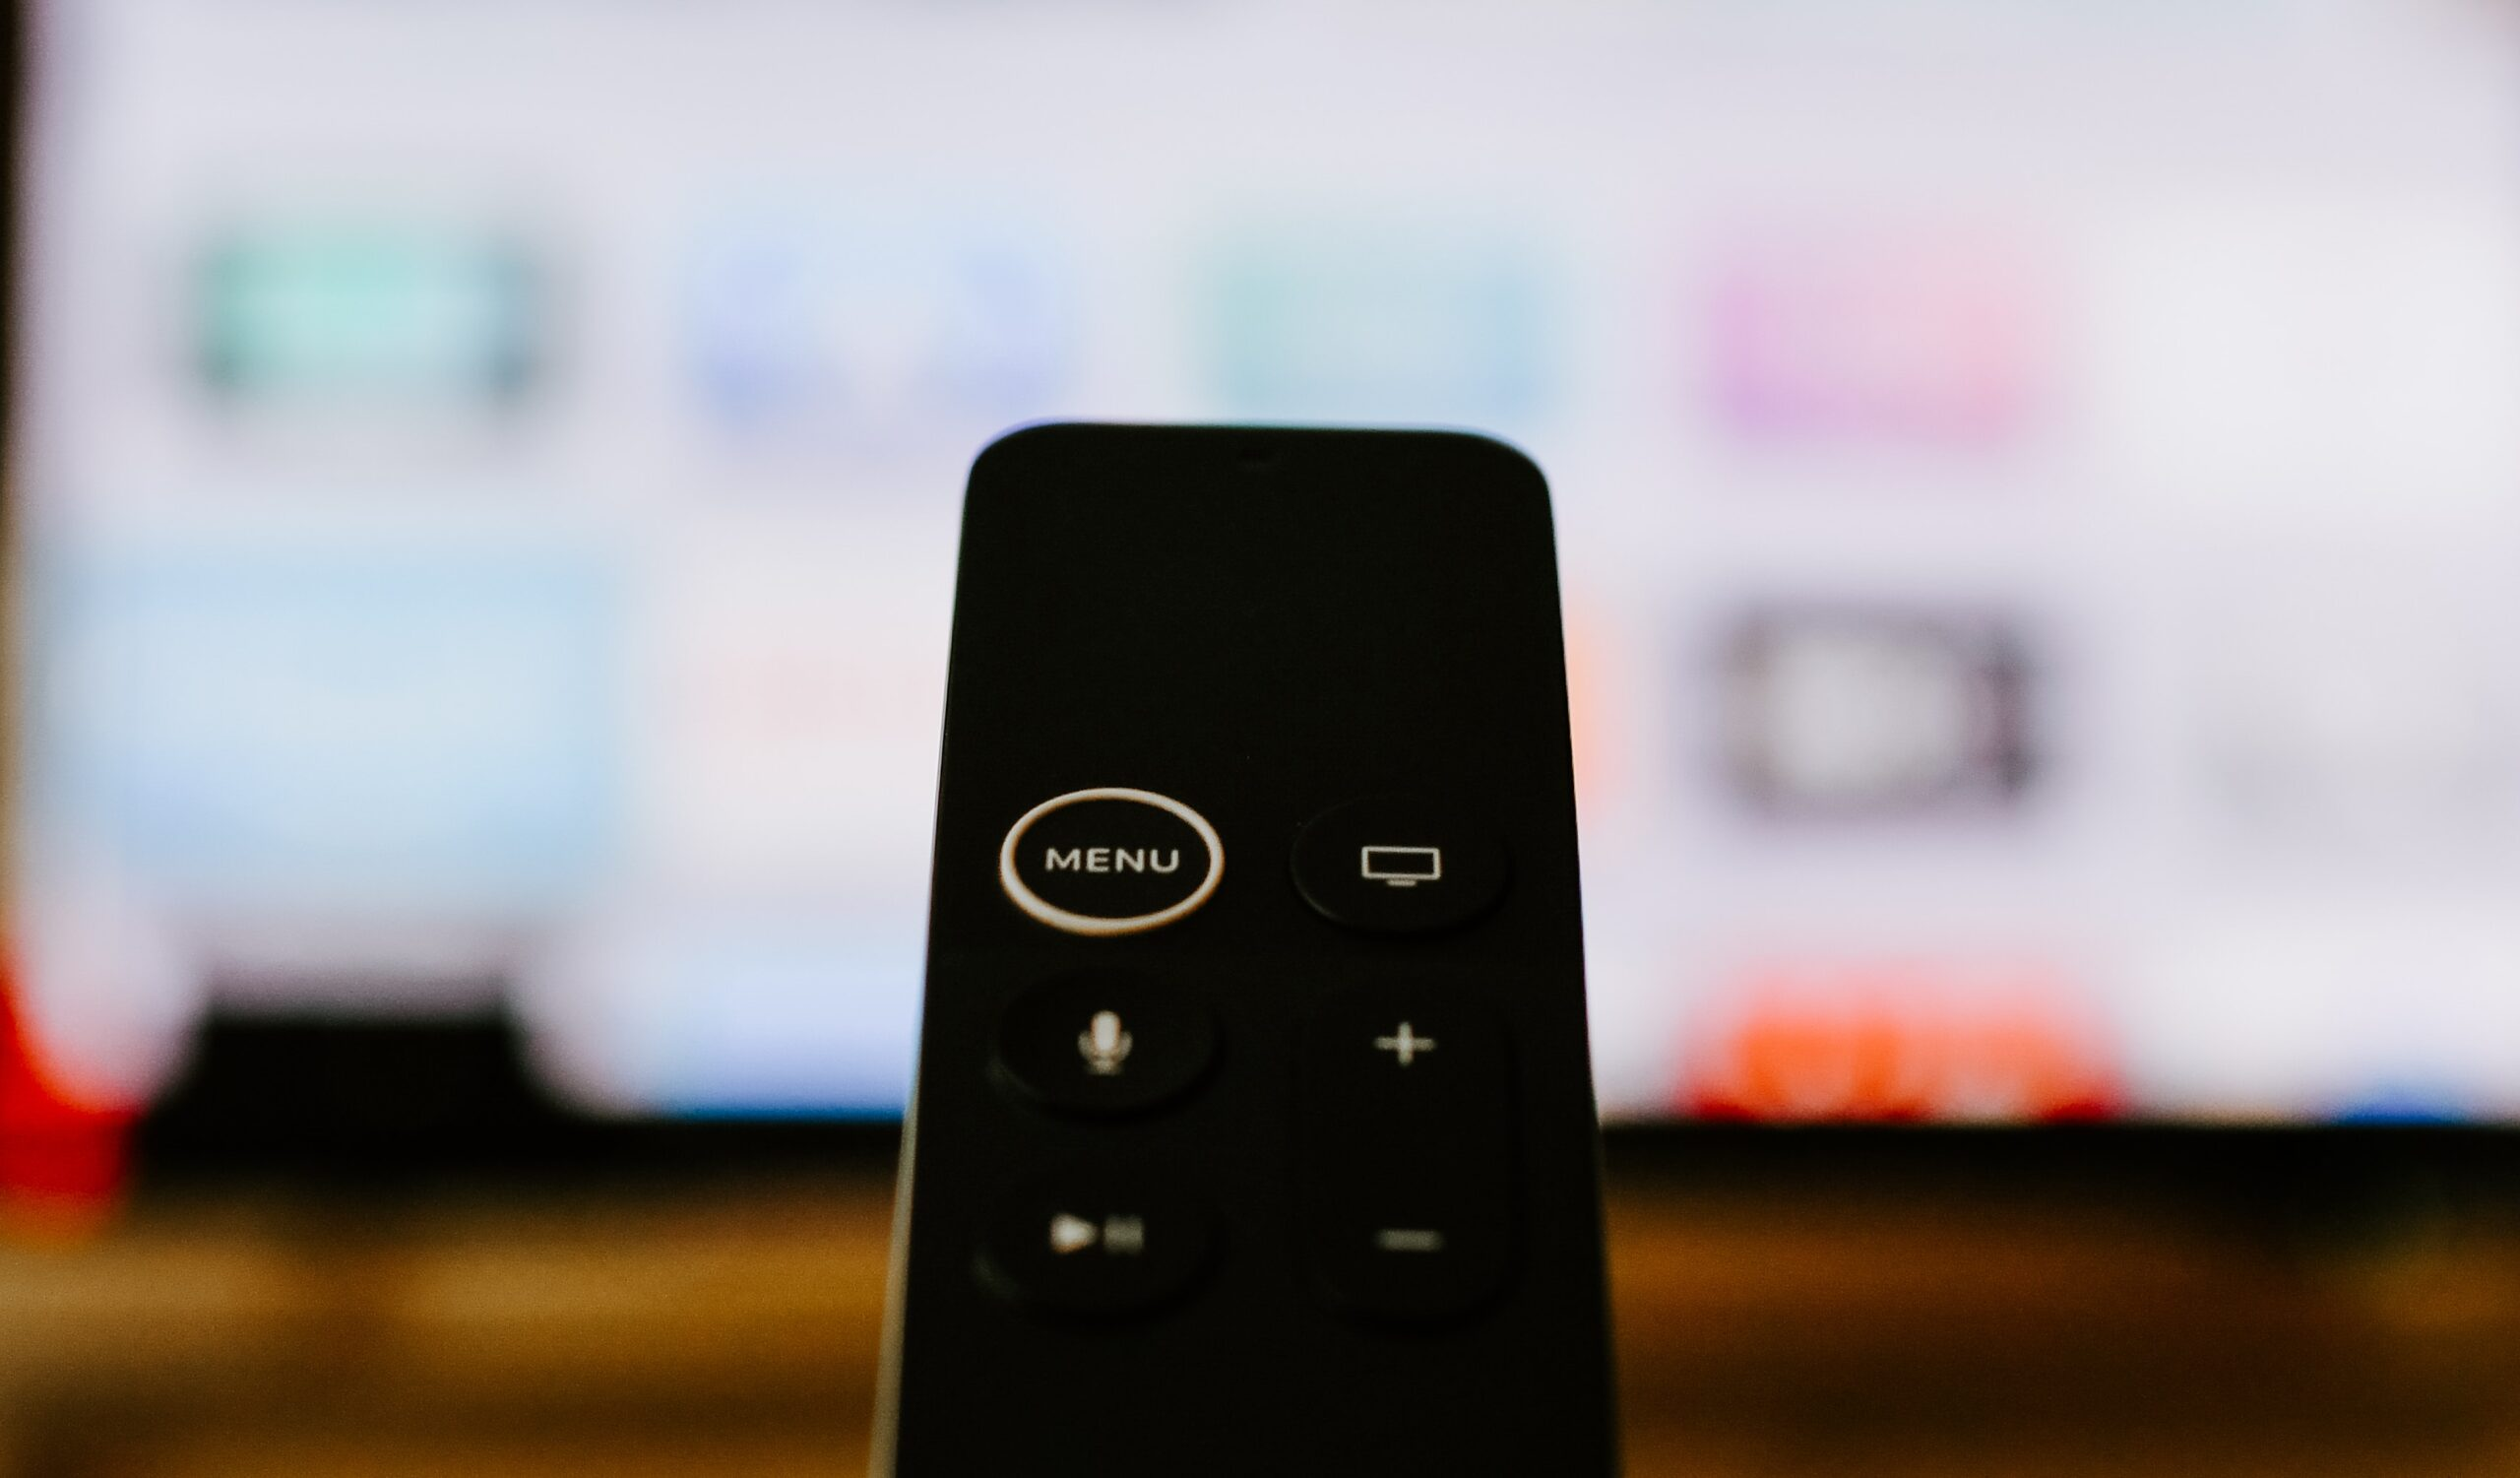 kelly-sikkema-Apple TV4k remote and screen in background-unsplash